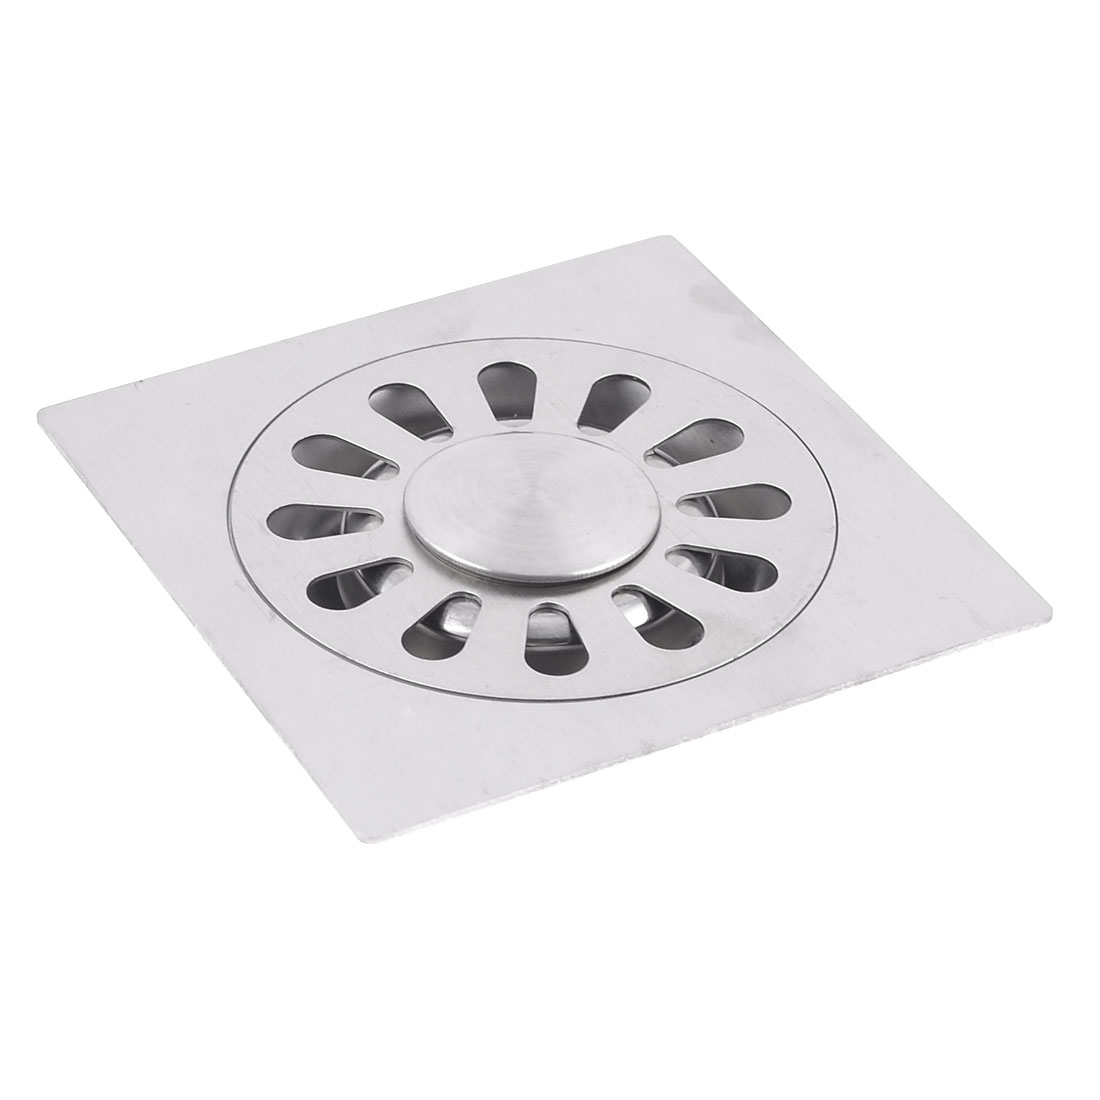 Bathroom 10cm x 10cm Square Shape Floor Grating Drain 3.1""